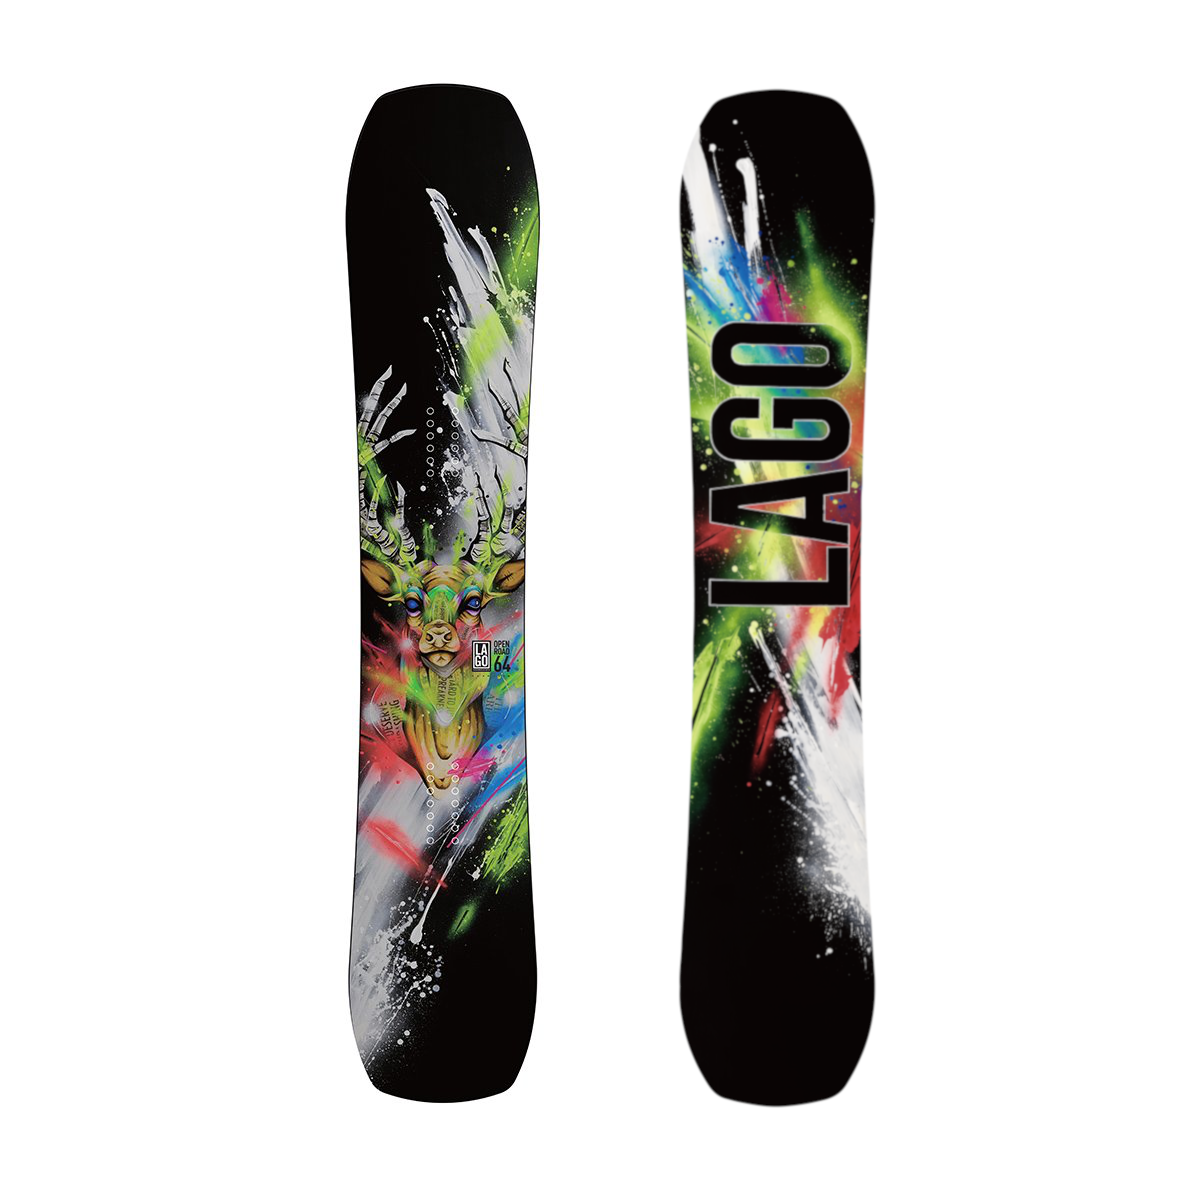 NEW Lago Snowboards Open Road